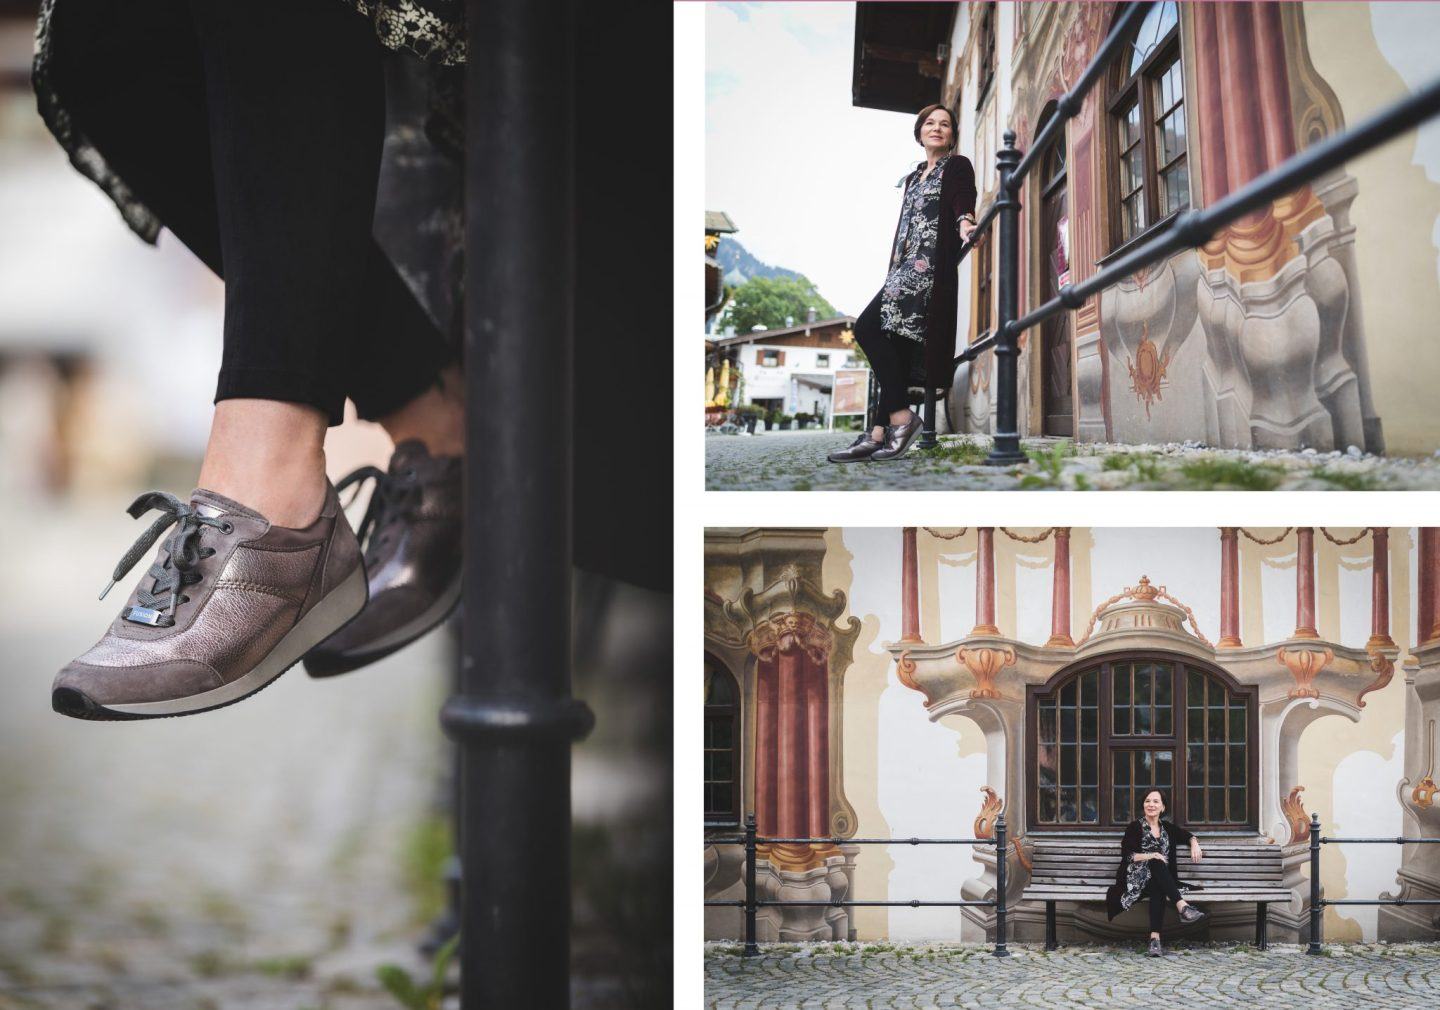 ara Fusion4 Lissabon Sneakers bequem Herbst 50plus Blogger Lady of Style